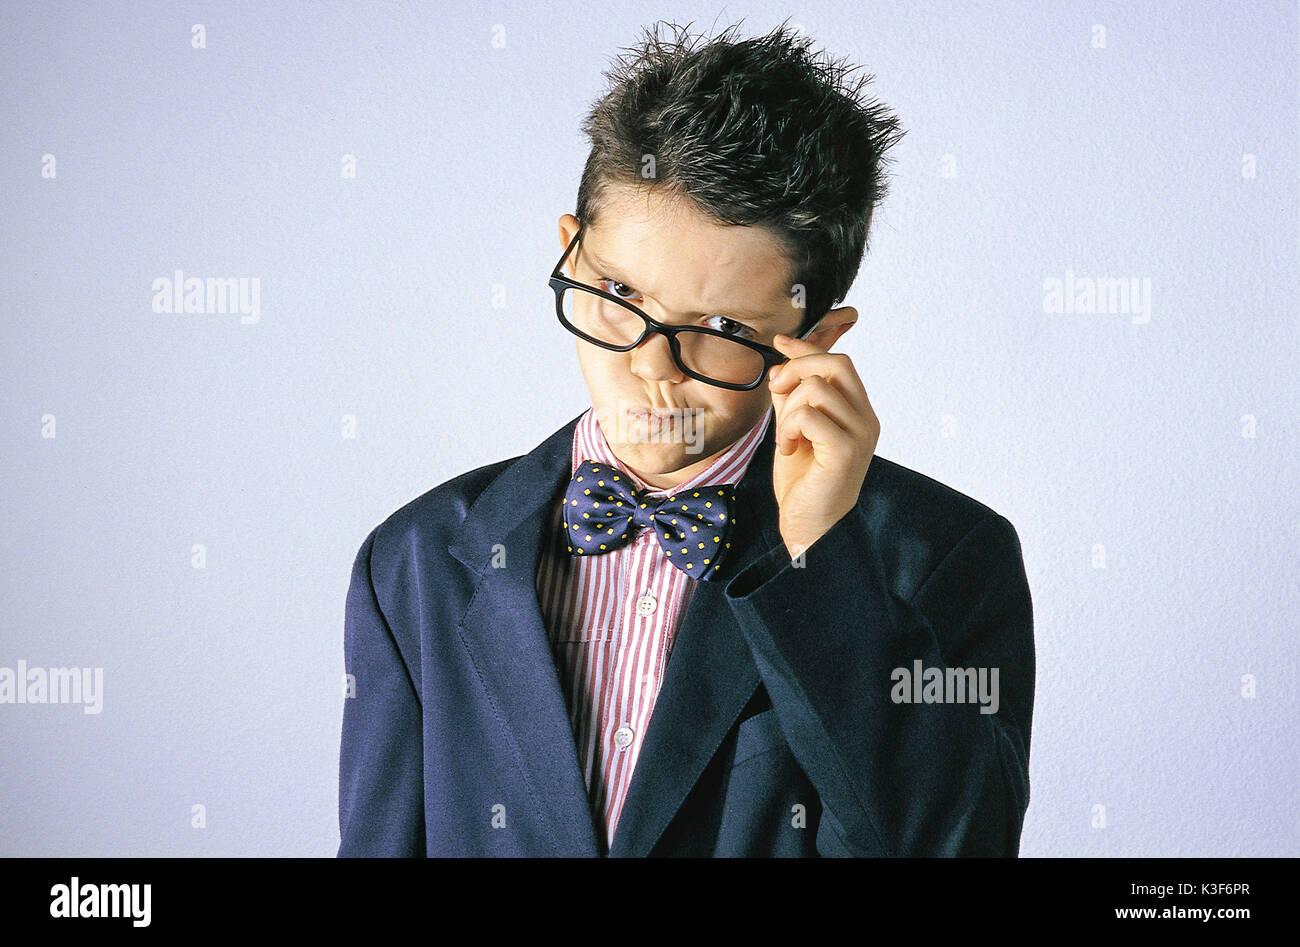 Small boy with bow tie touches with his hand the glasses frame and pulls his mouth - Stock Image